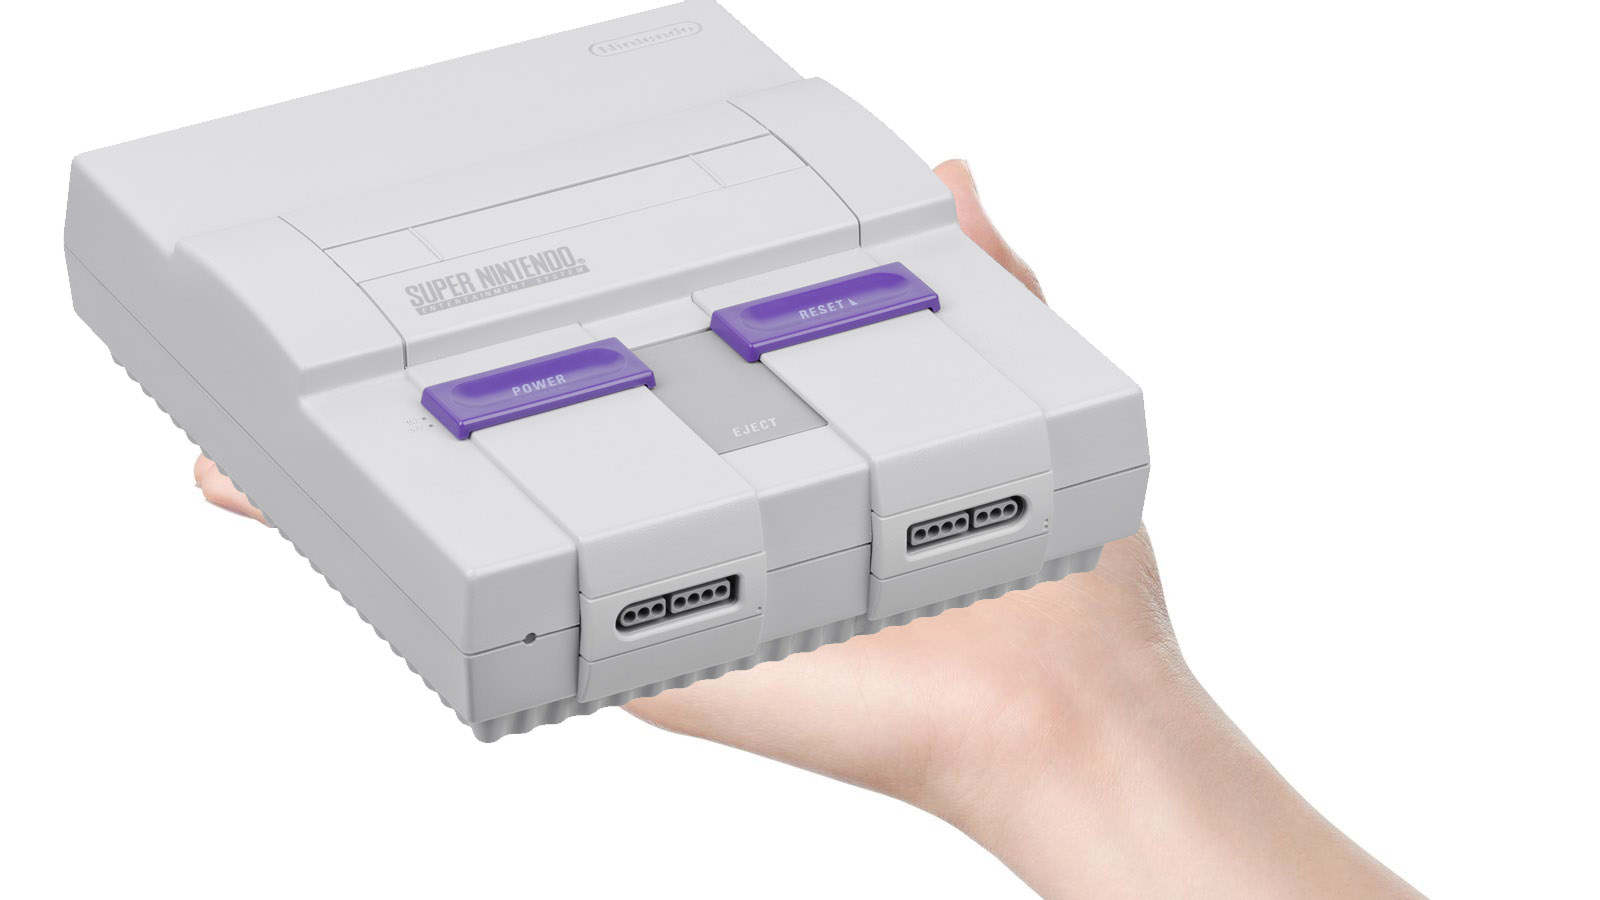 Nes classic edition f a q everything you need to know - How much is a super nintendo console worth ...